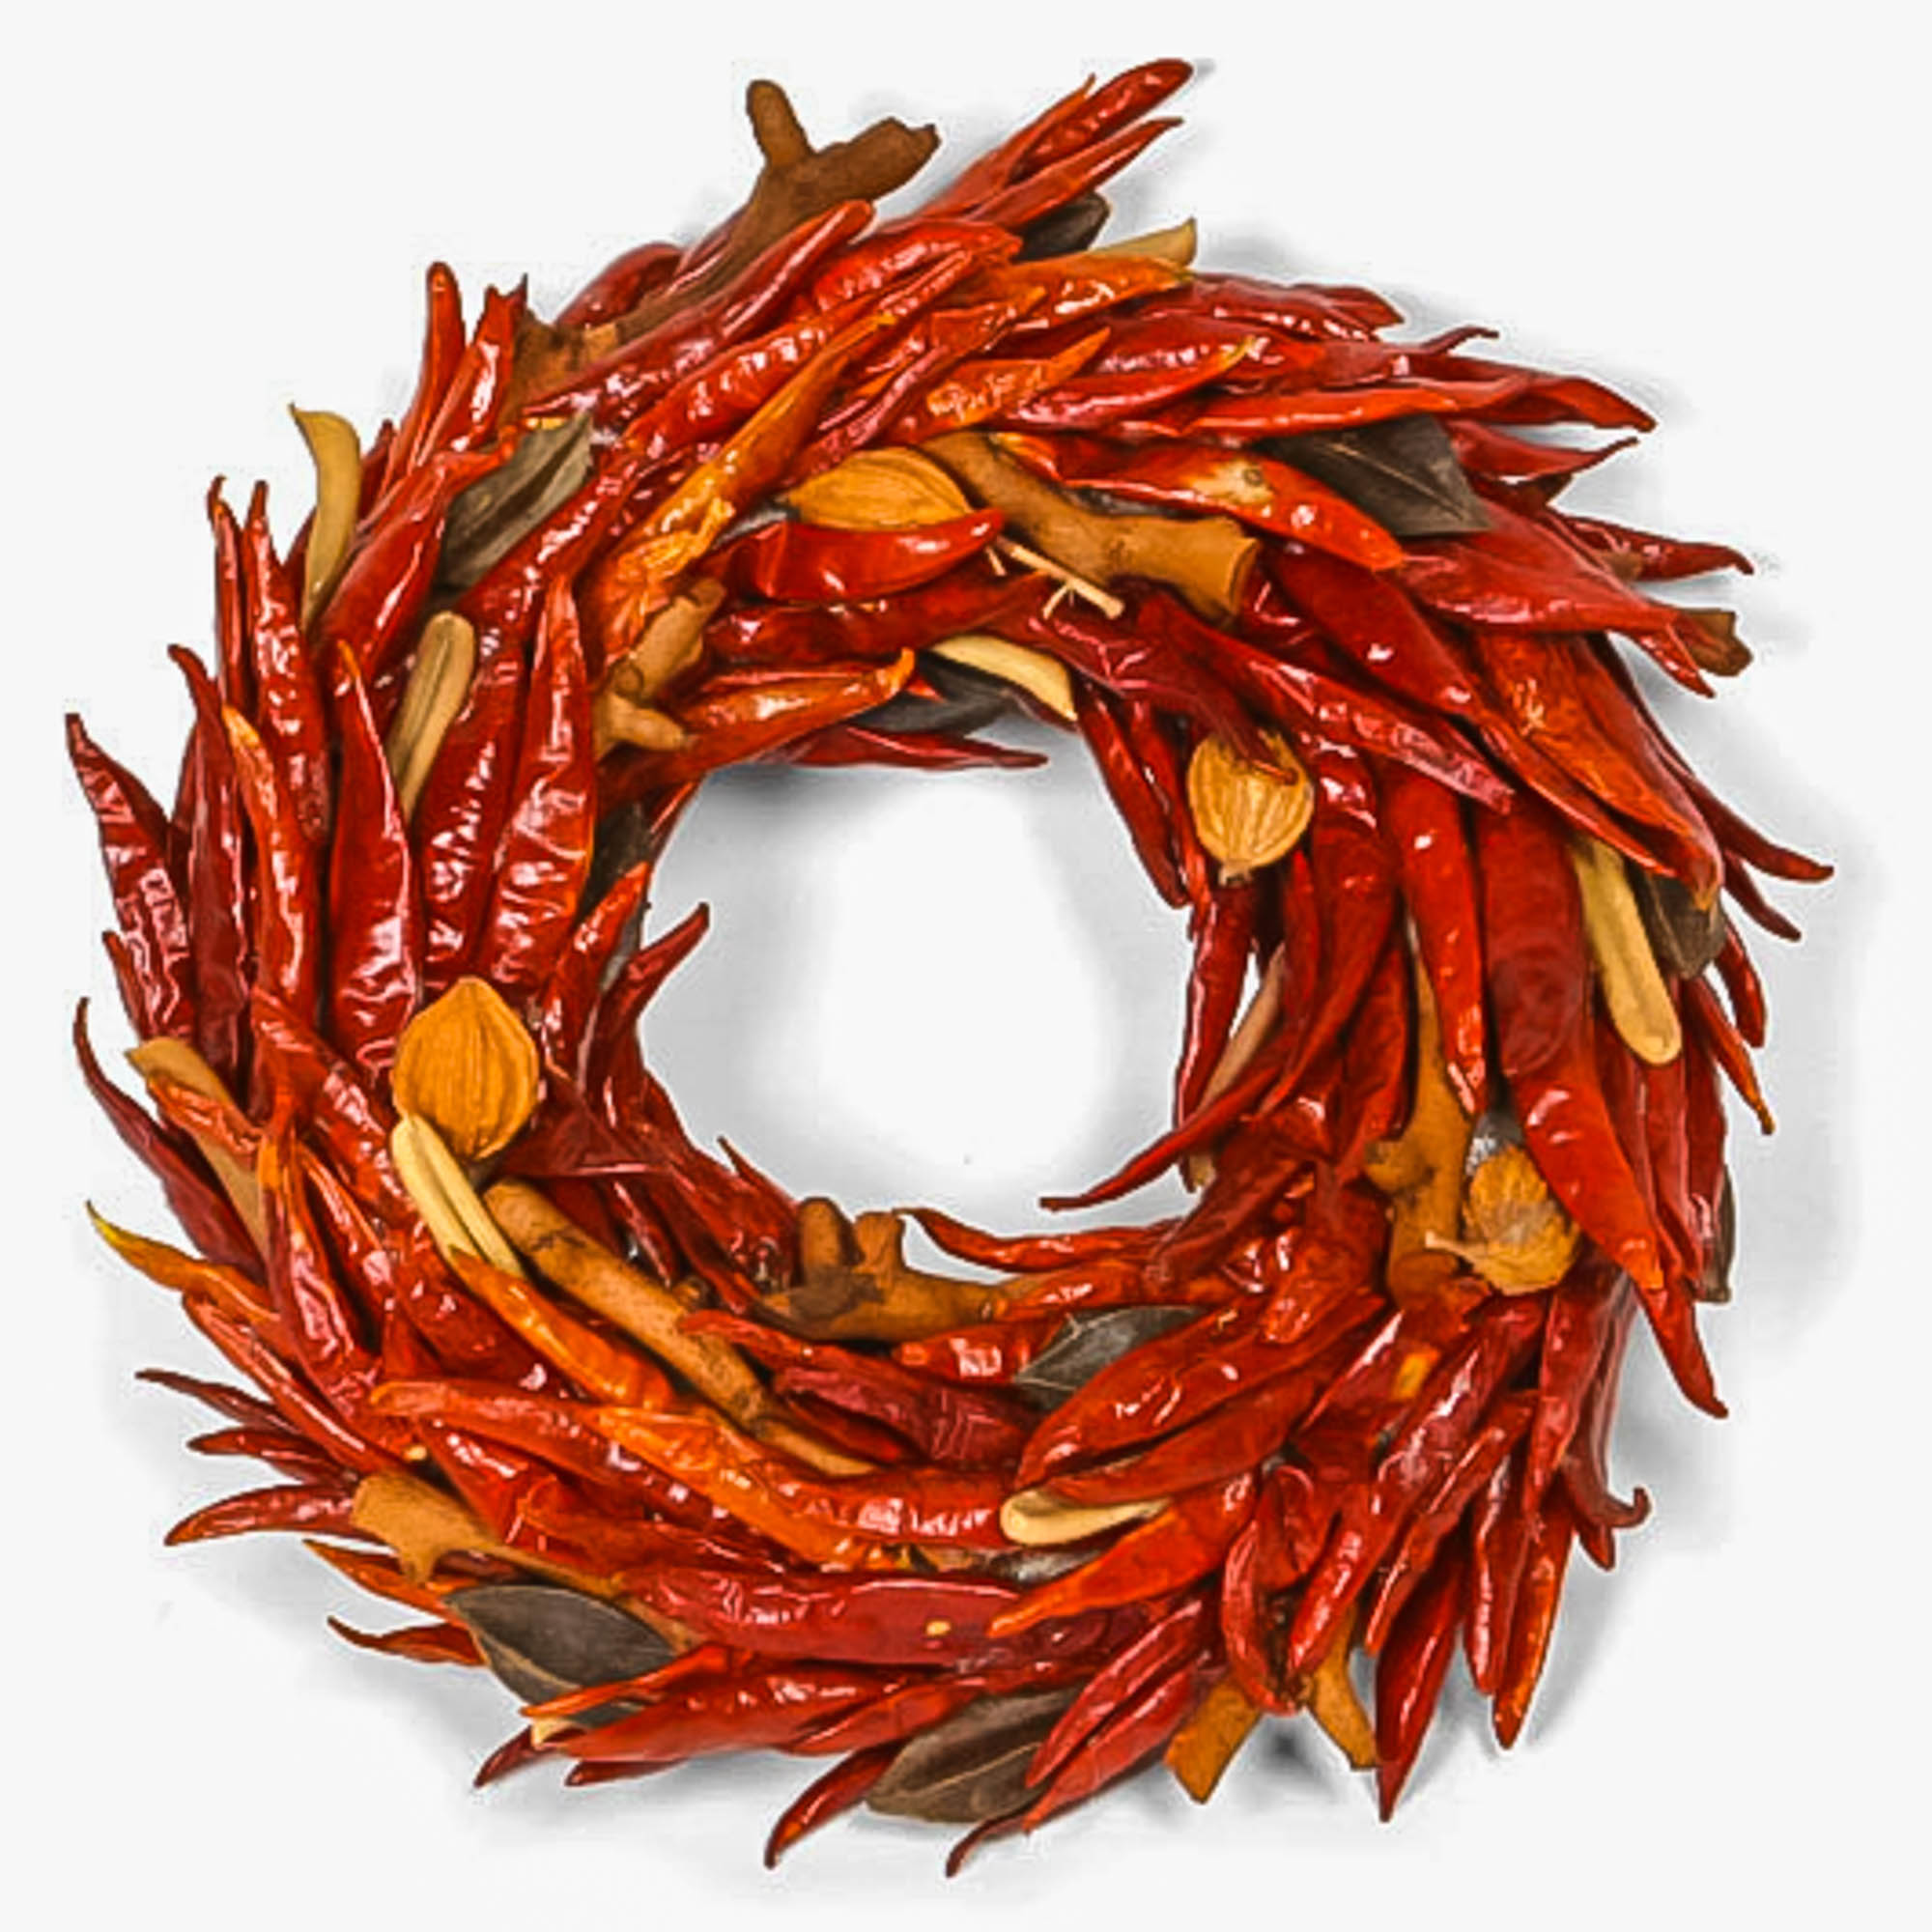 Chili Pepper Crafts